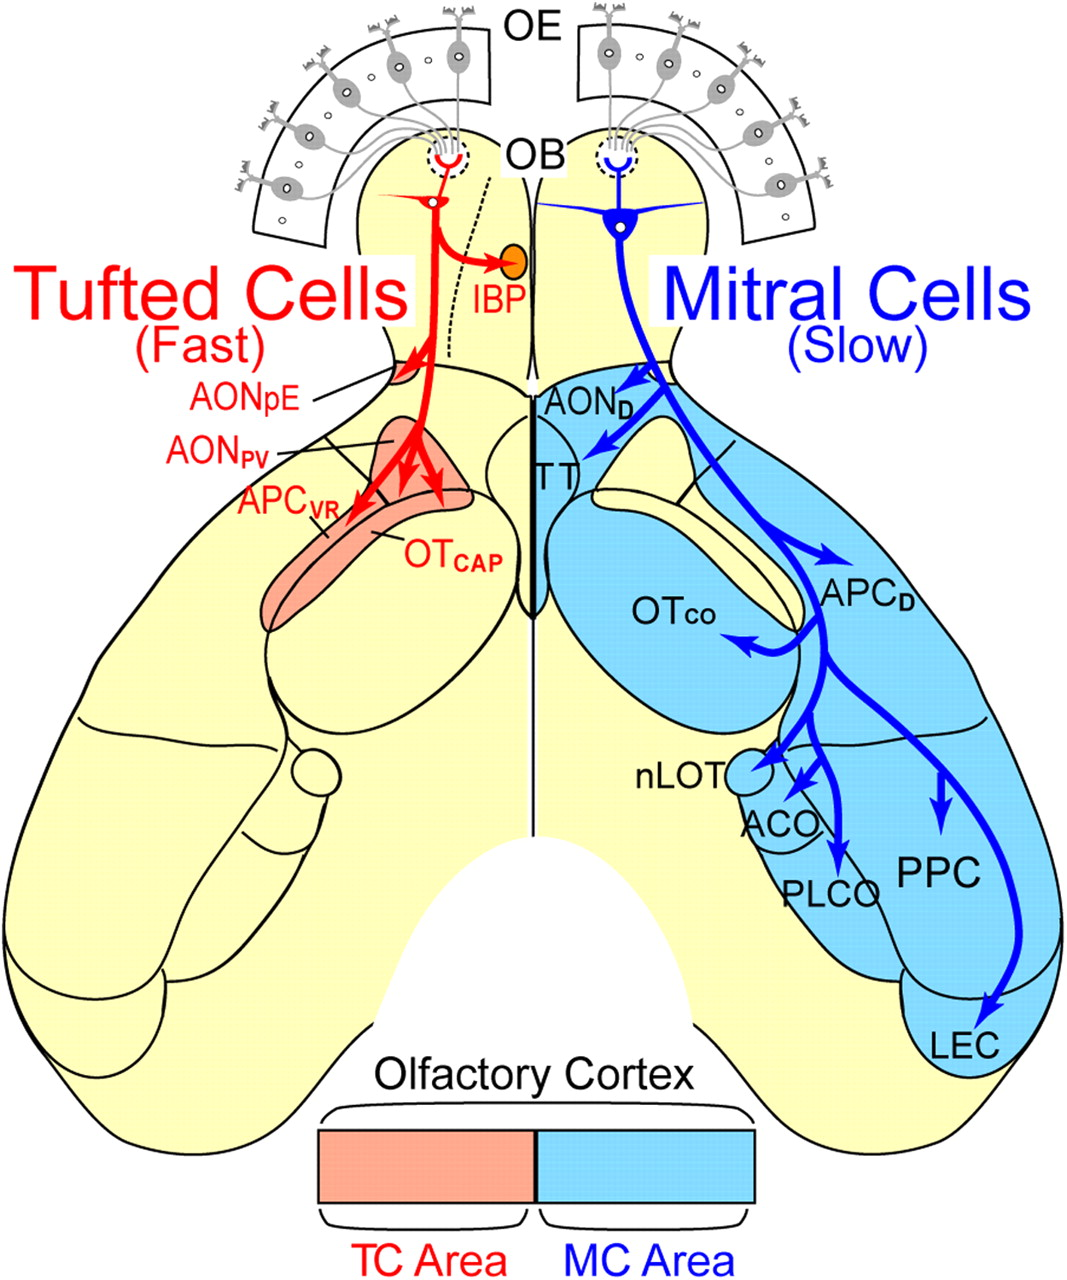 Parallel Mitral And Tufted Cell Pathways Route Distinct Odor